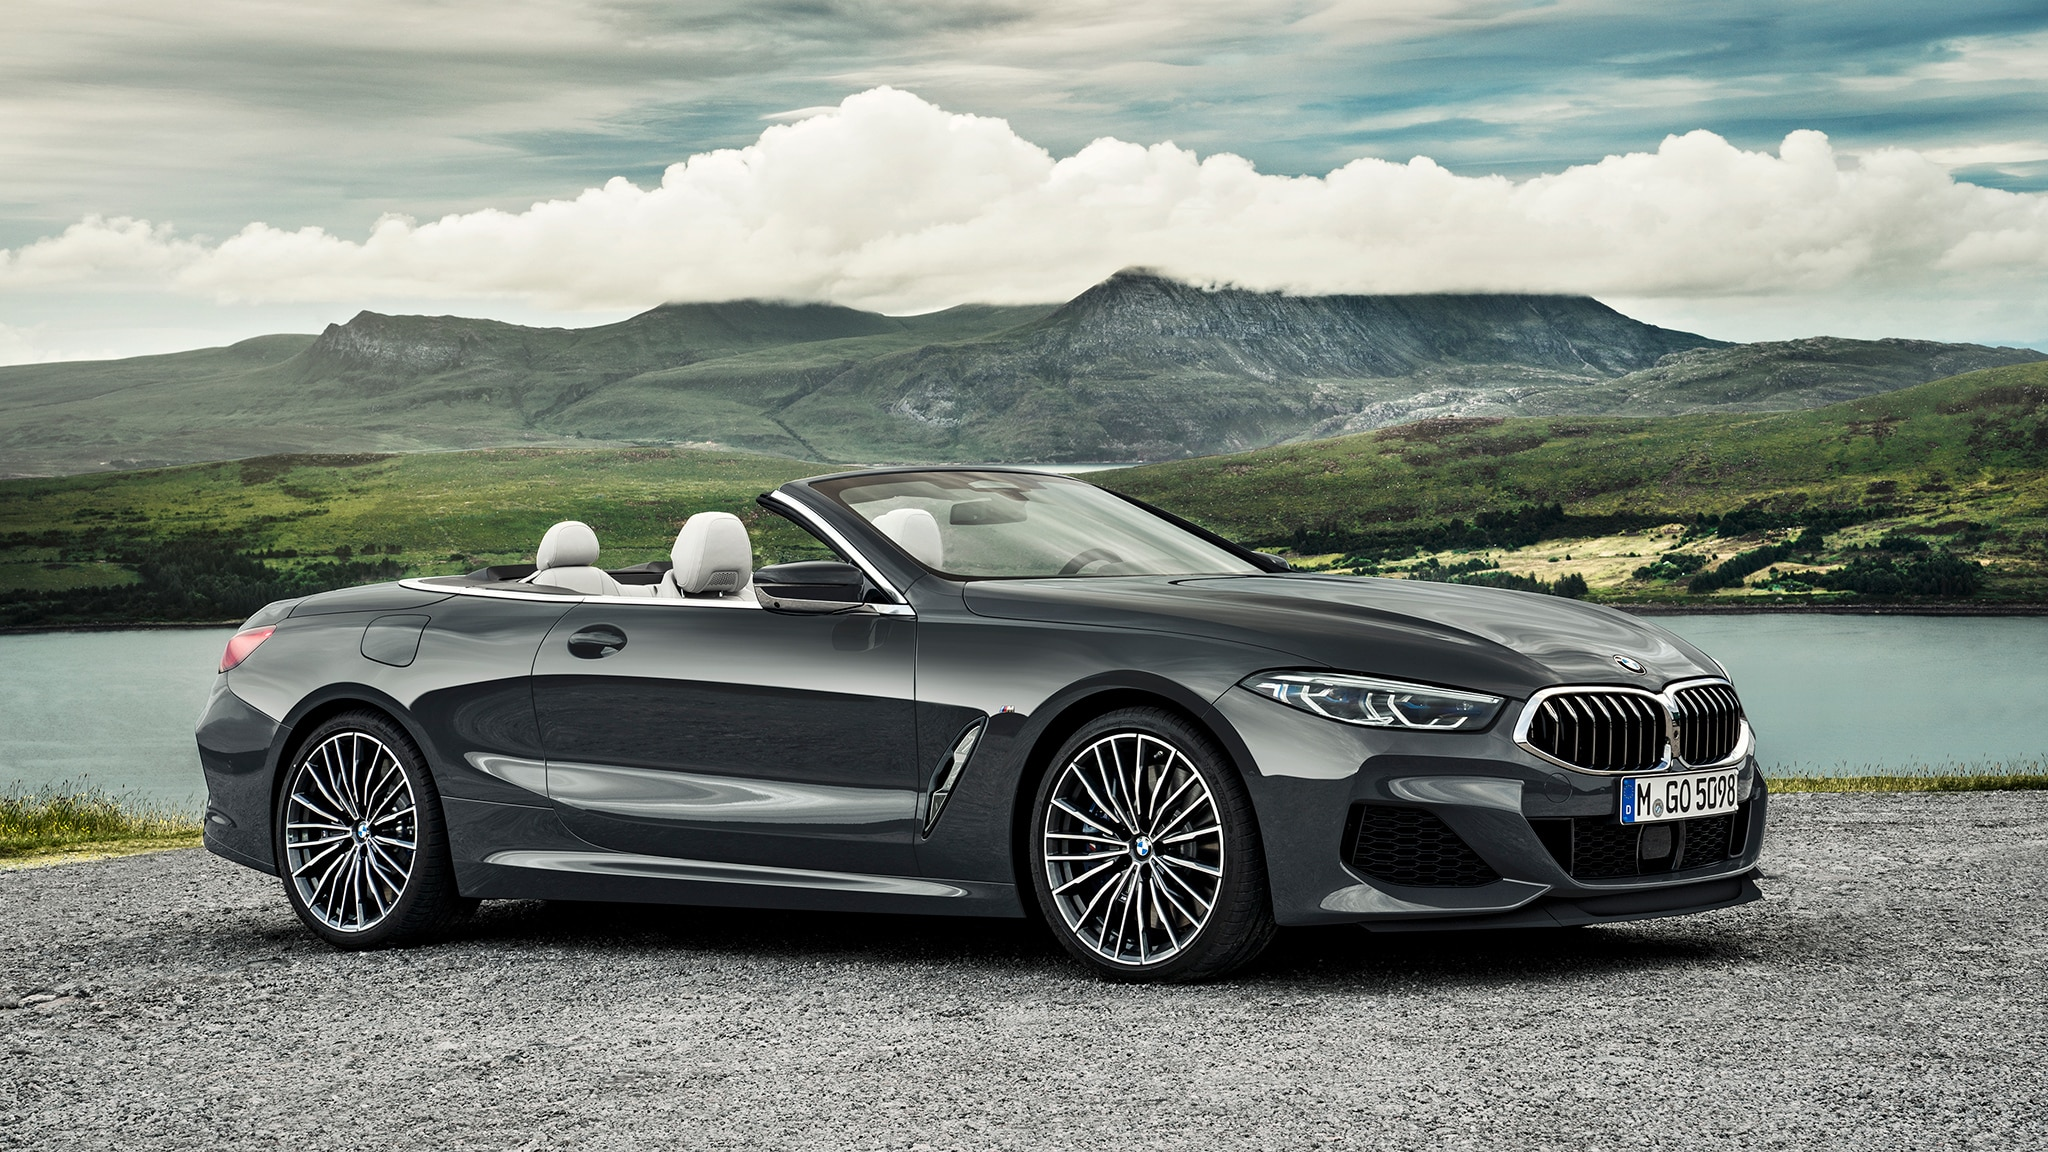 2019 BMW M850i Convertible Front Side View Parked